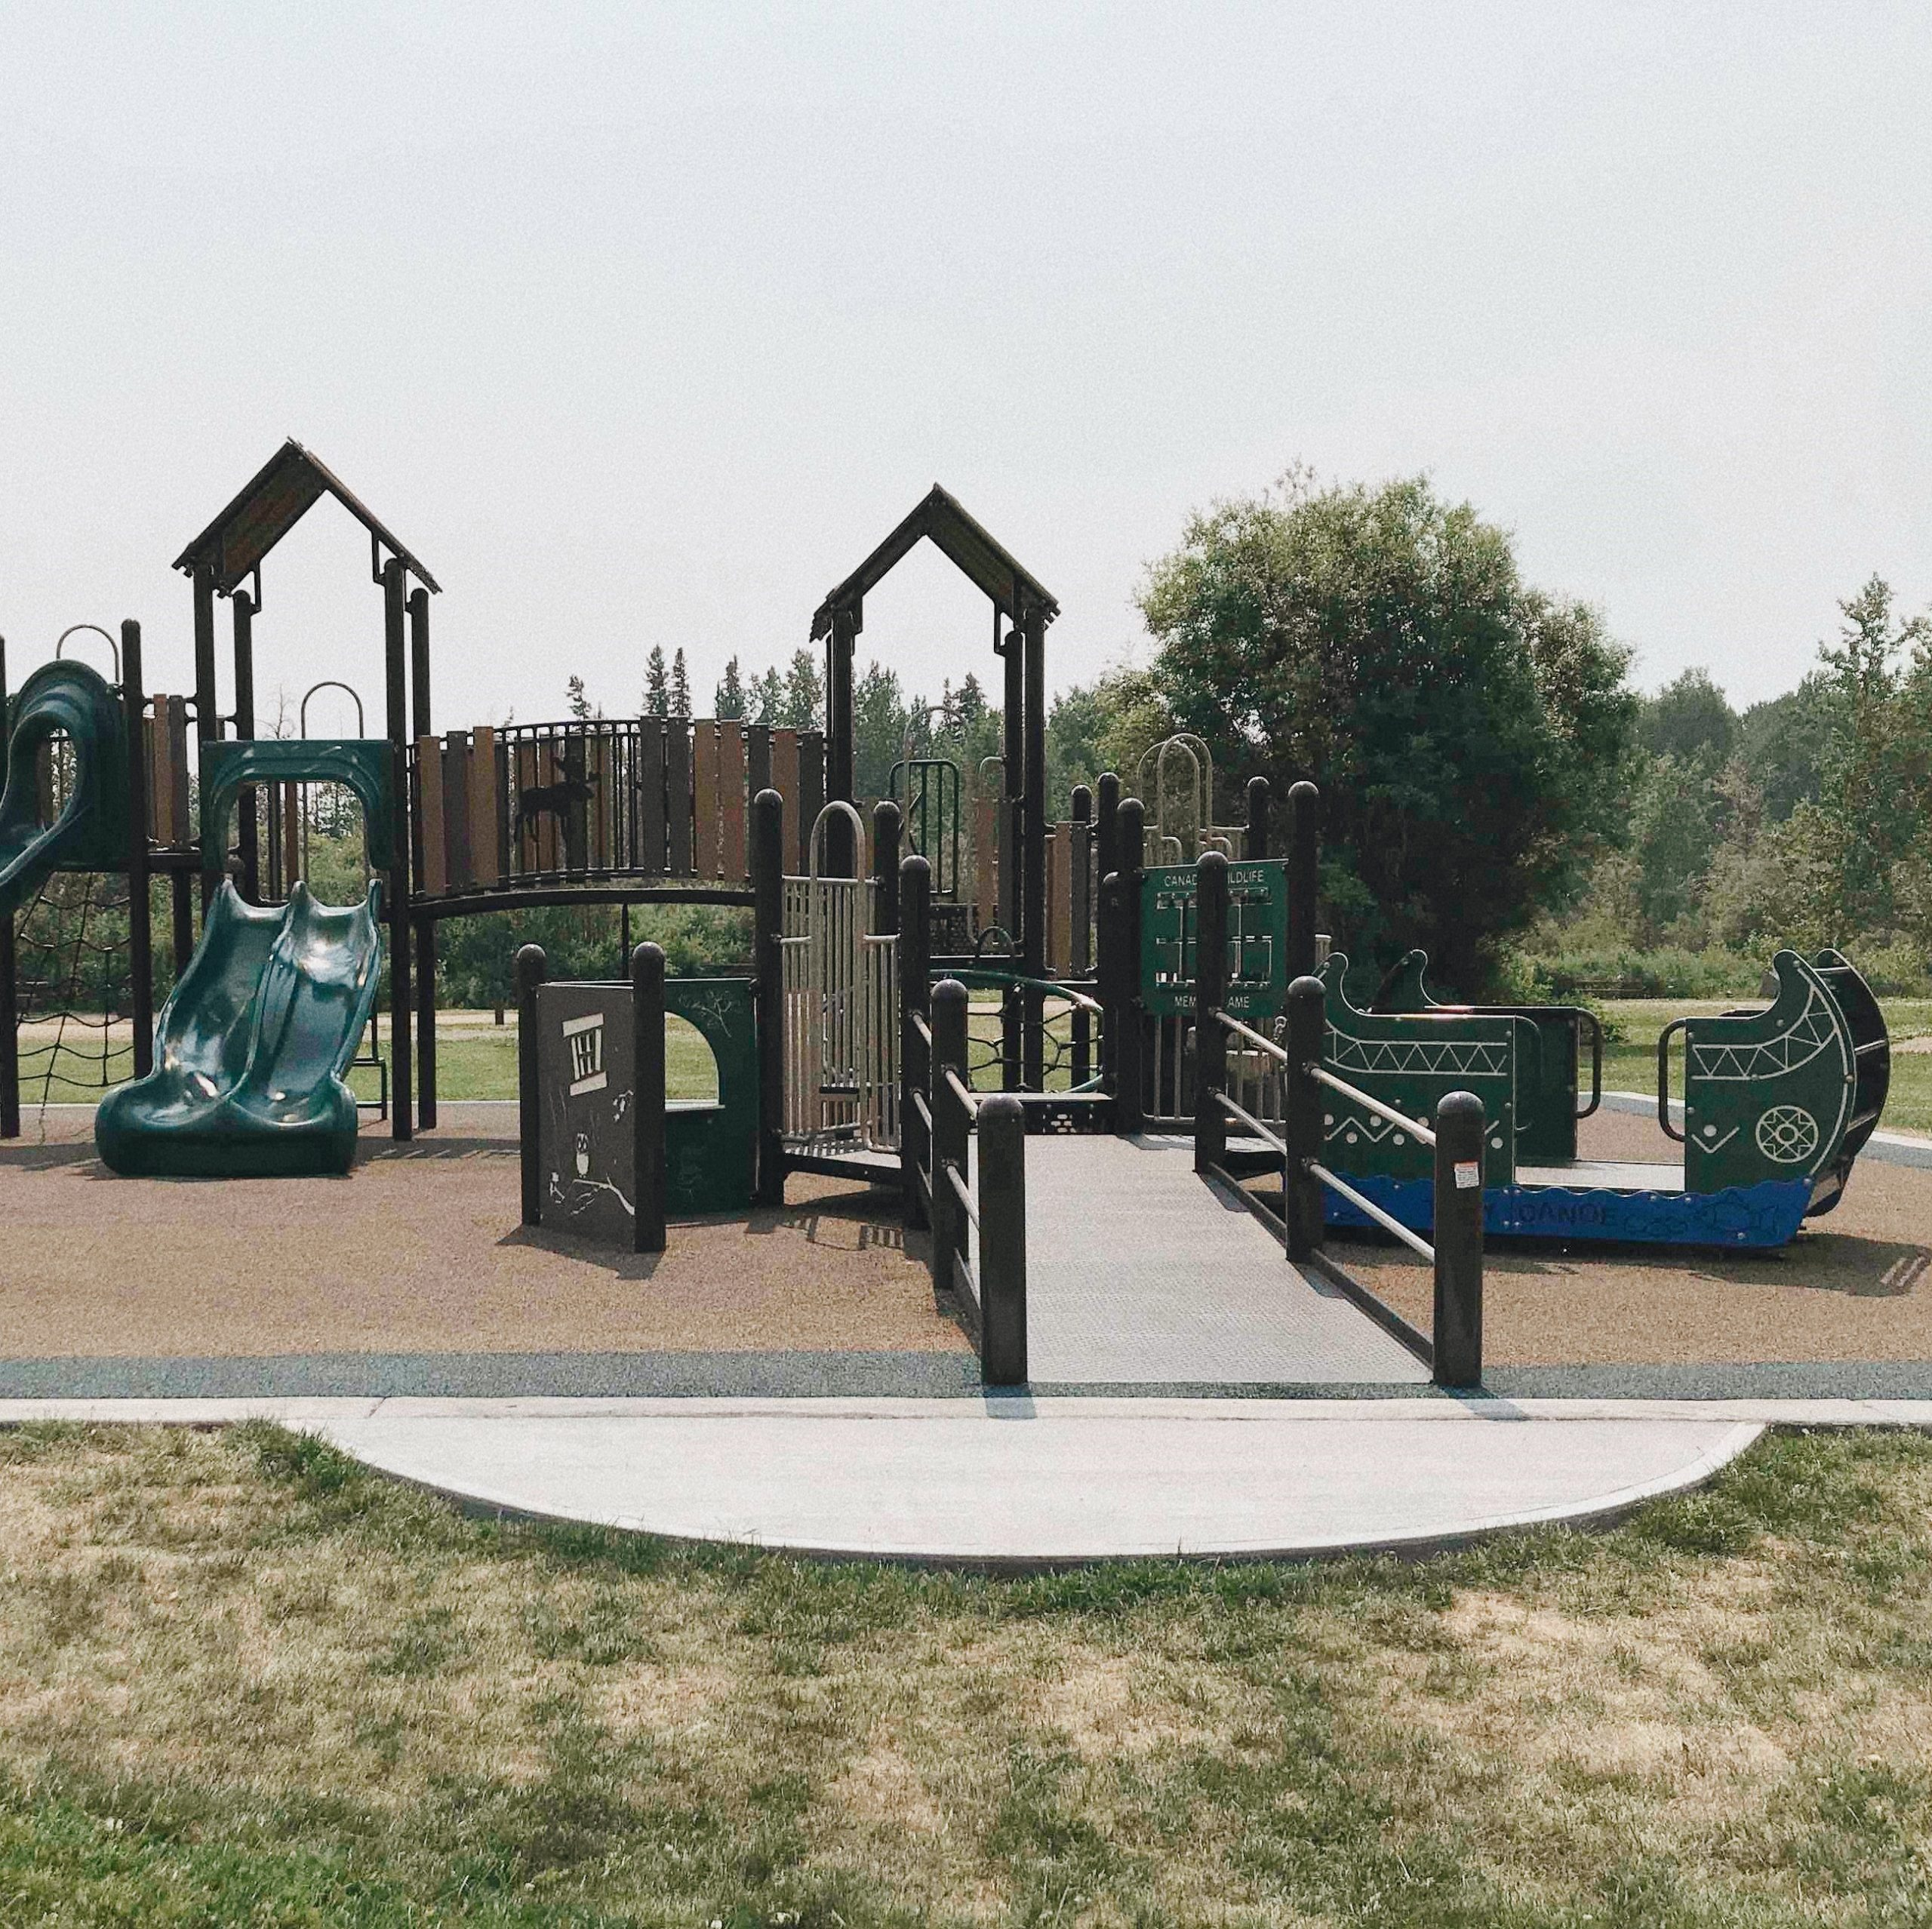 a photo of Swan Lake accessible playground. The playground has a ramp for access and flat ground